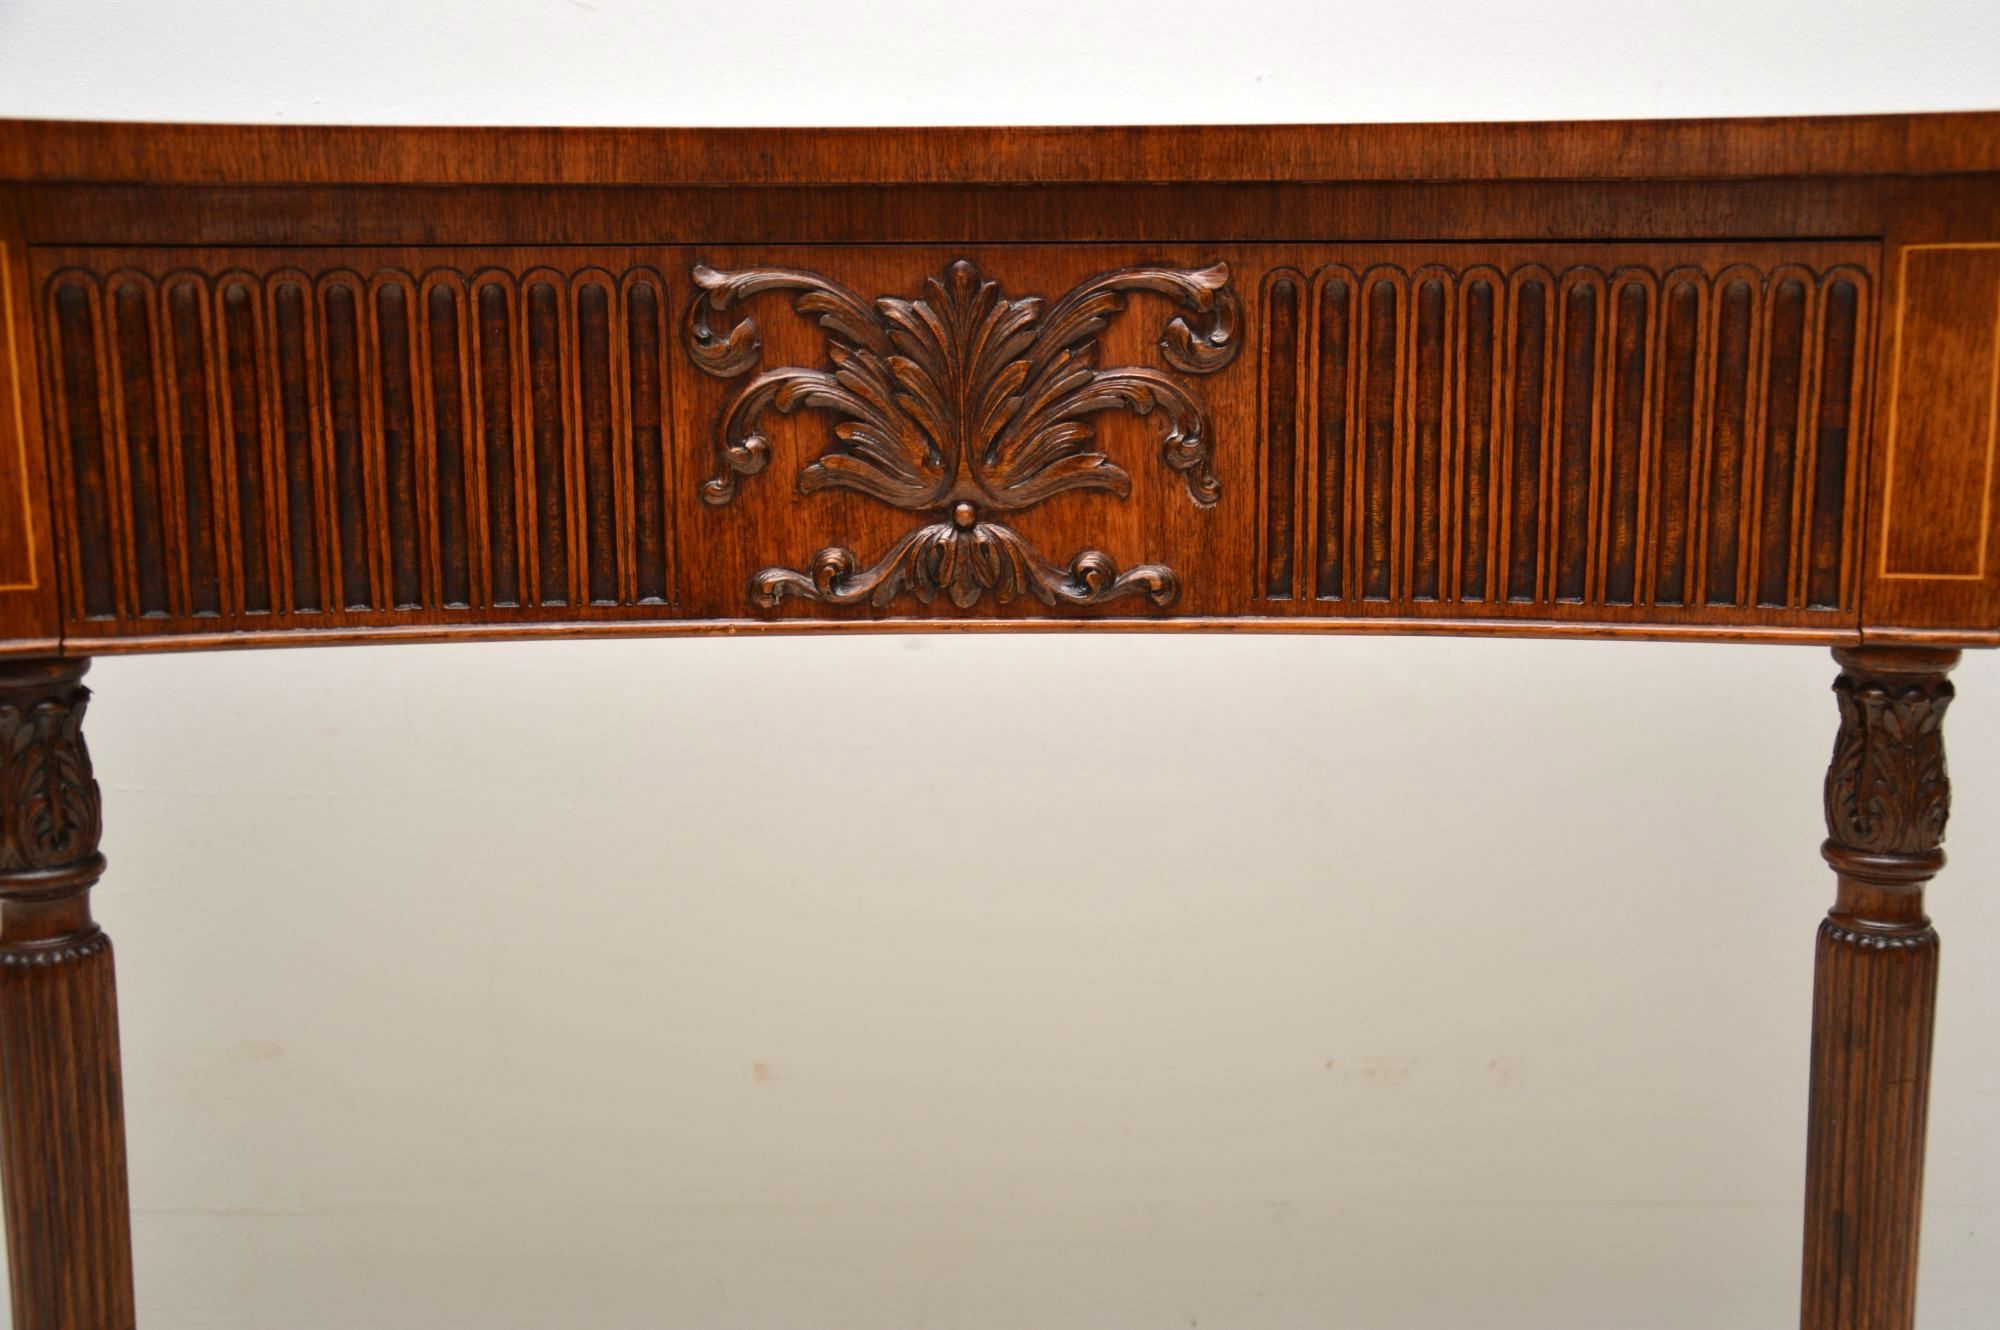 Antique Inlaid Mahogany & Kingwood Server Console Table (1930 To Regarding Orange Inlay Console Tables (Gallery 17 of 20)